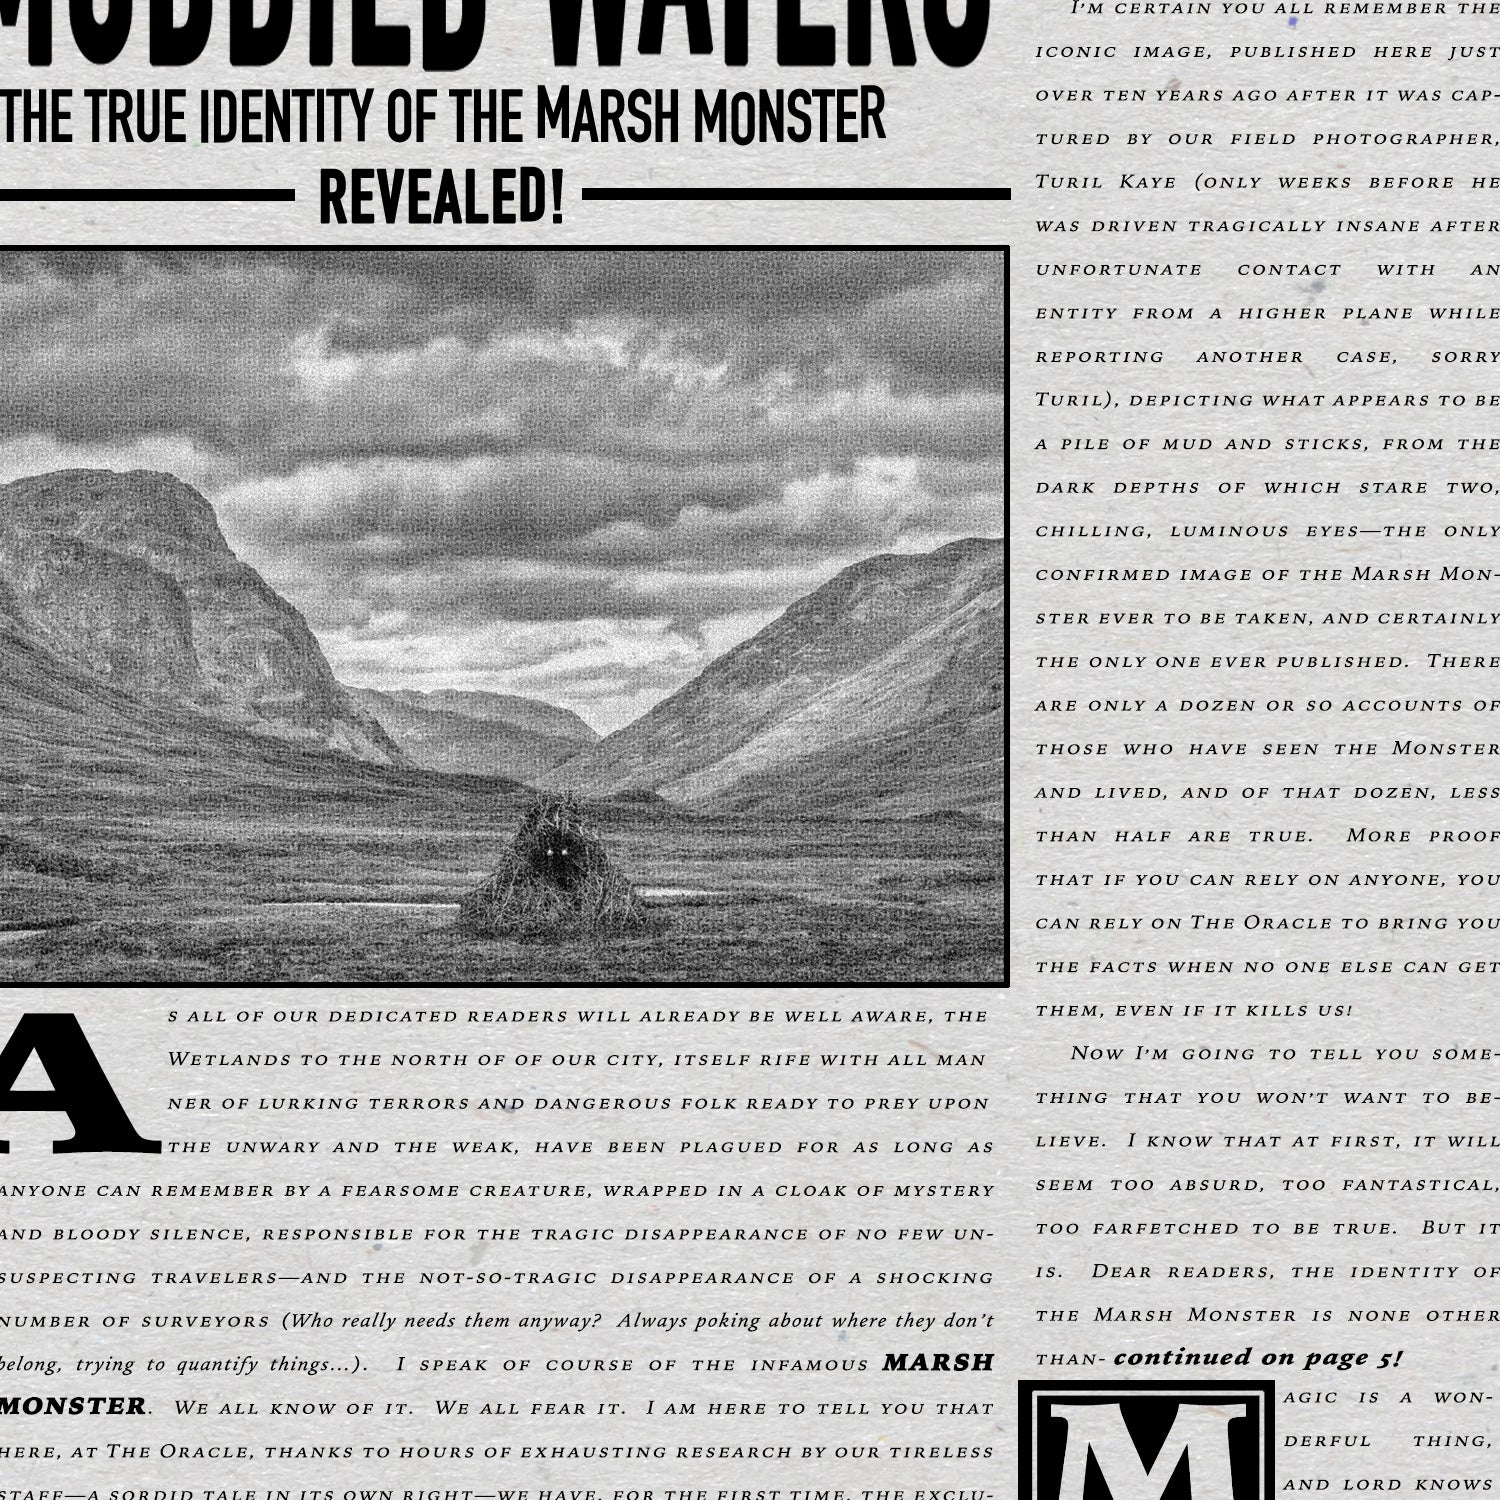 The Oracle Newspaper, headline Muddied Waters, the truth about the marsh monster